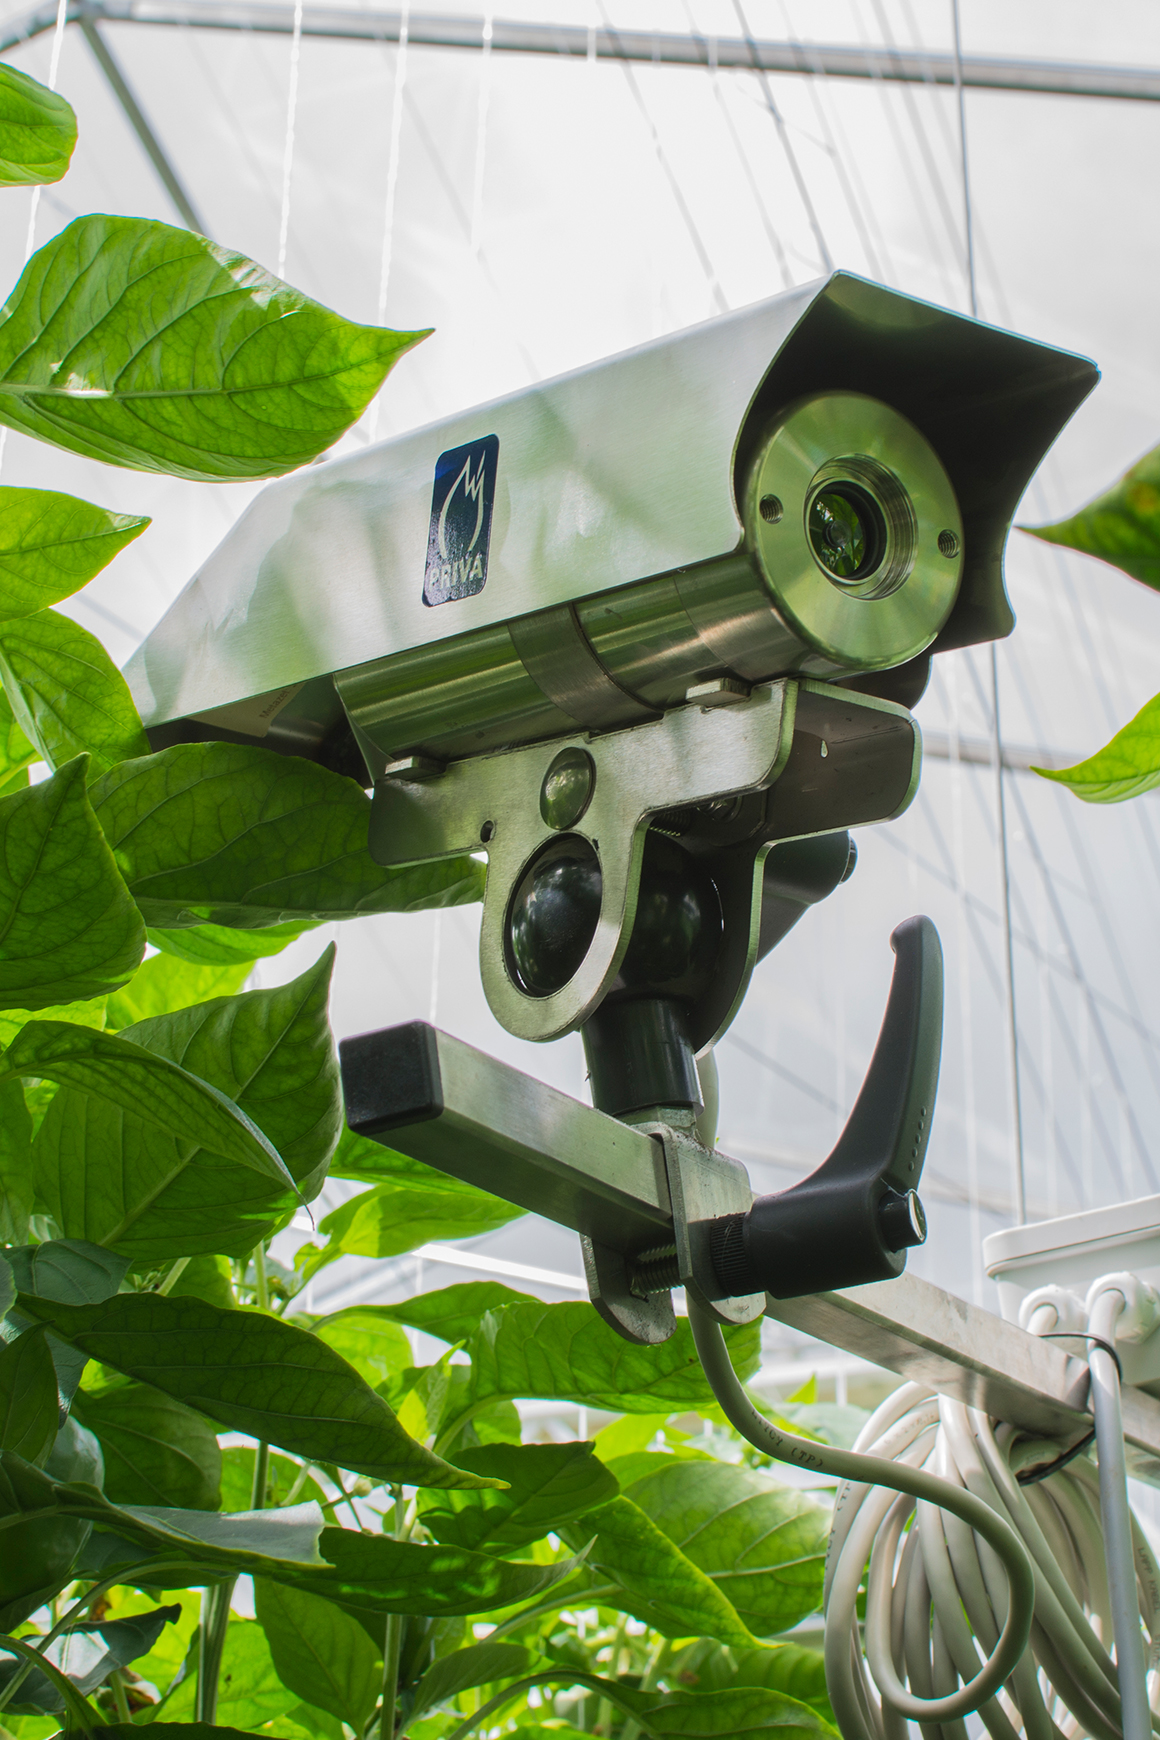 A camera that monitors the growing peppers at Tangmere Airfield Nurseries.